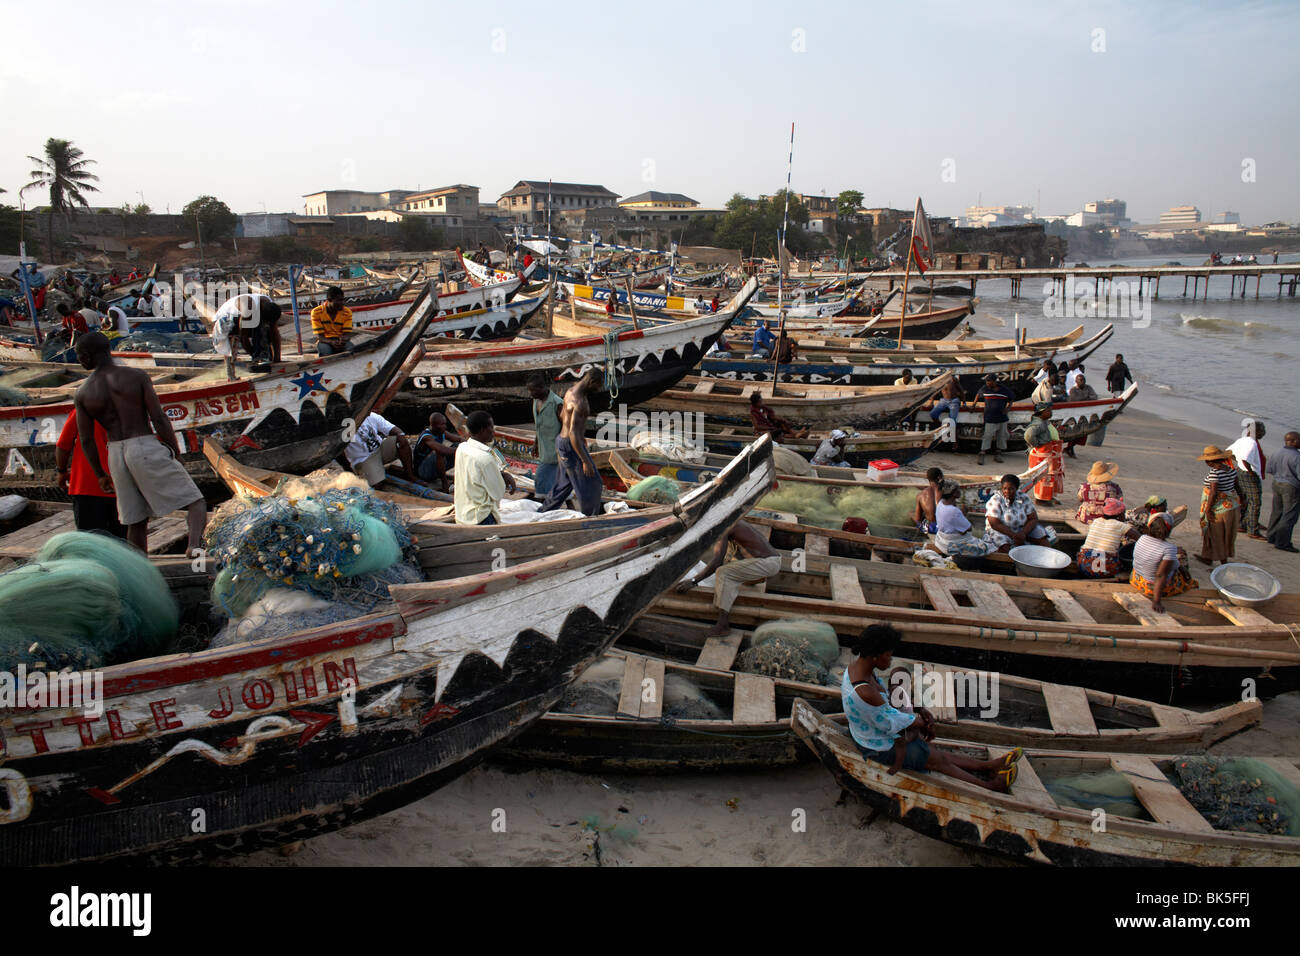 Fishing boats on the beach in Accra, Ghana, West Africa, Africa Stock Photo